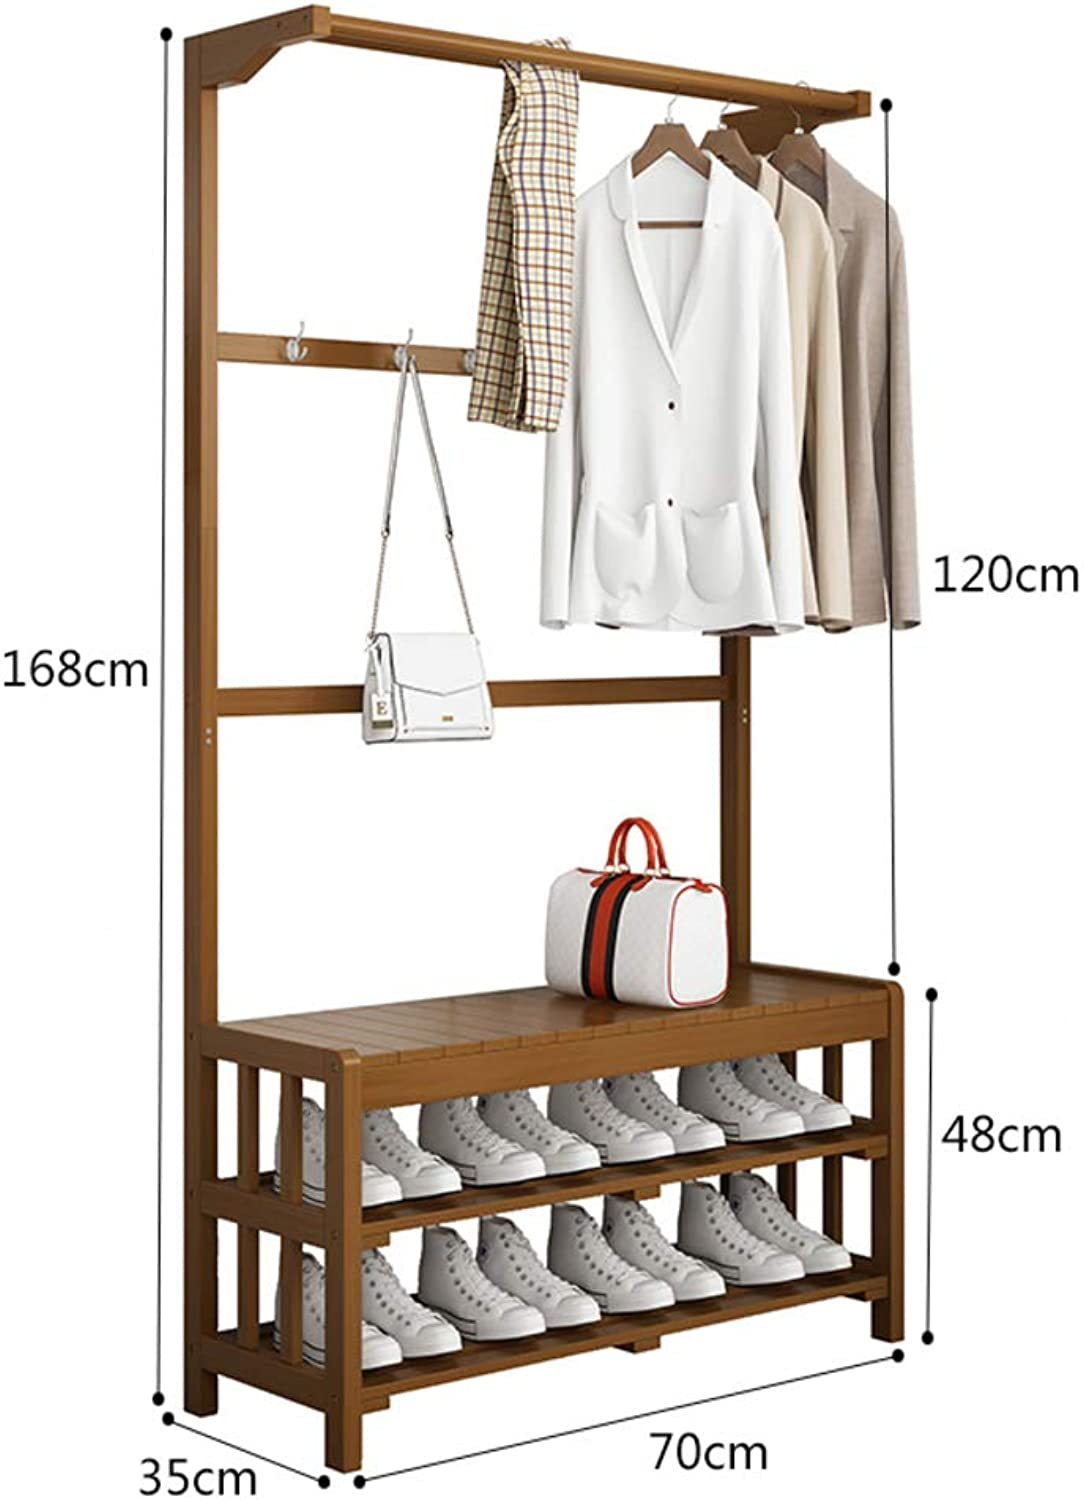 Coat Rack with Bench,Industrial Hooks,Hall Tree Entryway shoes Bench Rack and Coat Stand Storage Shelf Organizer 3 in 1 Design-E 70x35x168cm(28x14x66inch)